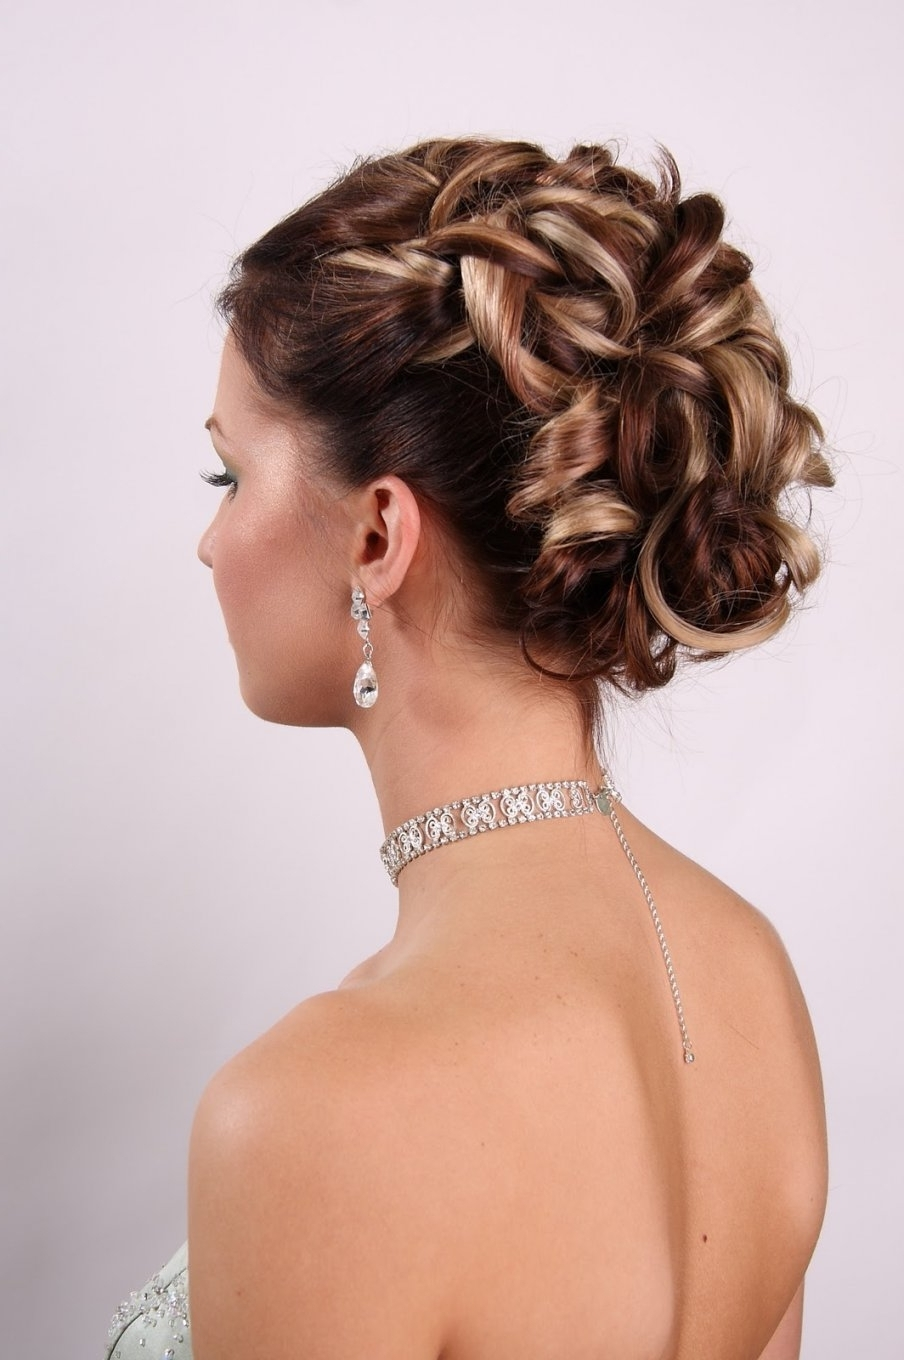 Well Liked Wedding Hairstyles For Medium Short Hair With Regard To Wedding Hairstyles Medium Short Hair – Hairstyle For Women & Man (View 14 of 15)